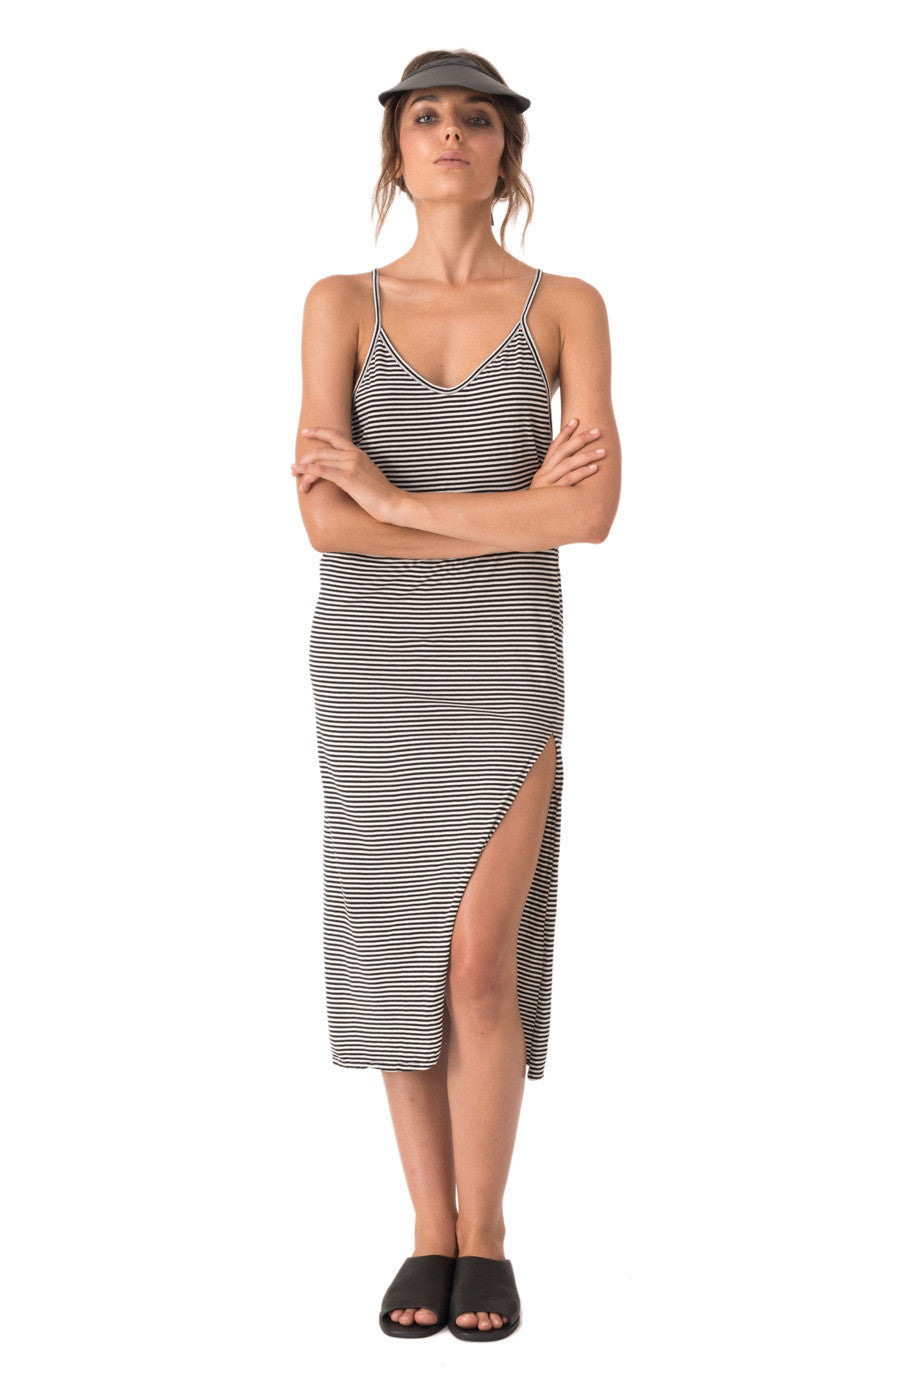 6c10b2f0ad0 The Bare Road Cotton Cami Dress Tilly Black Stripe - Call Me The Breeze - 1  ...